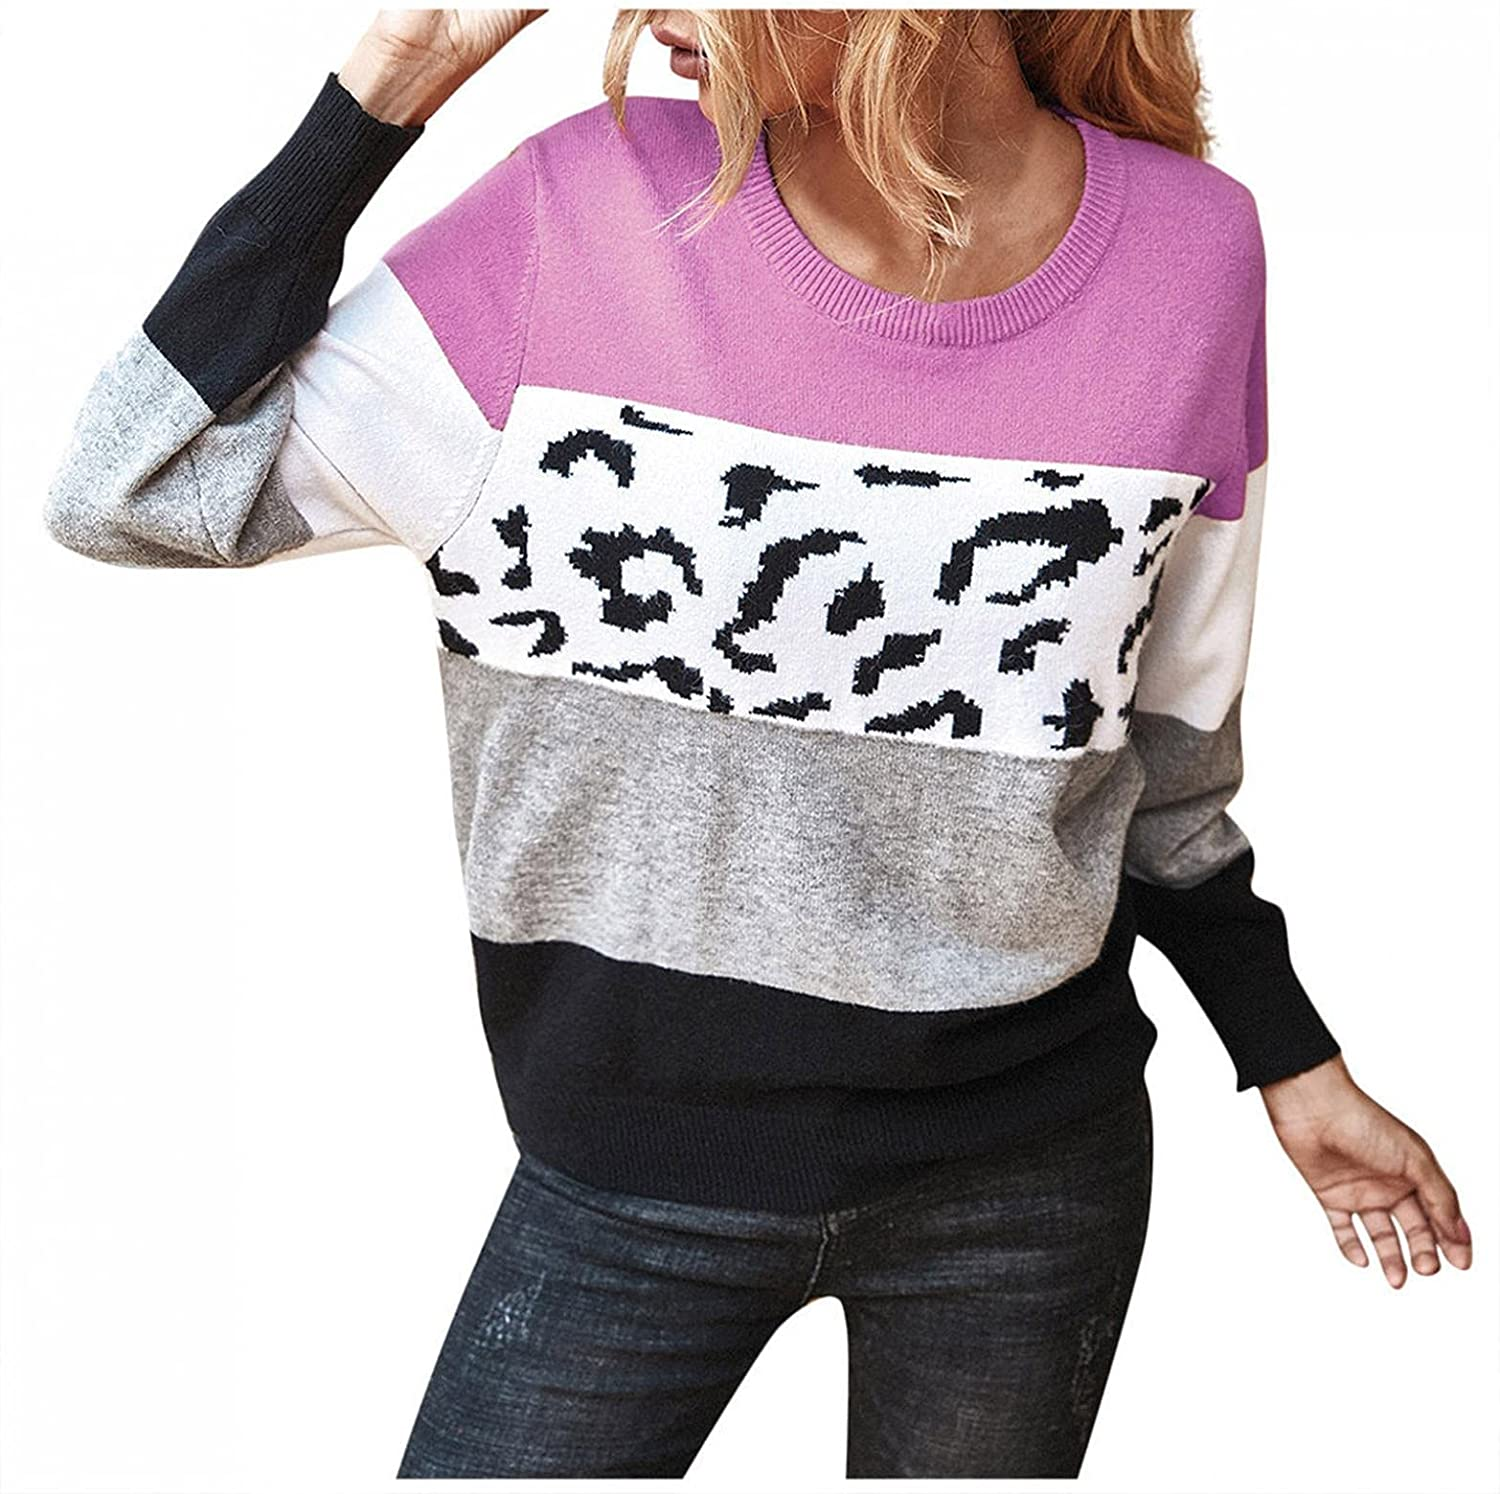 Pullover Sweaters for Women Long Sleeve Blouse Crewneck Tops Contrasting Colors Tunic Tops